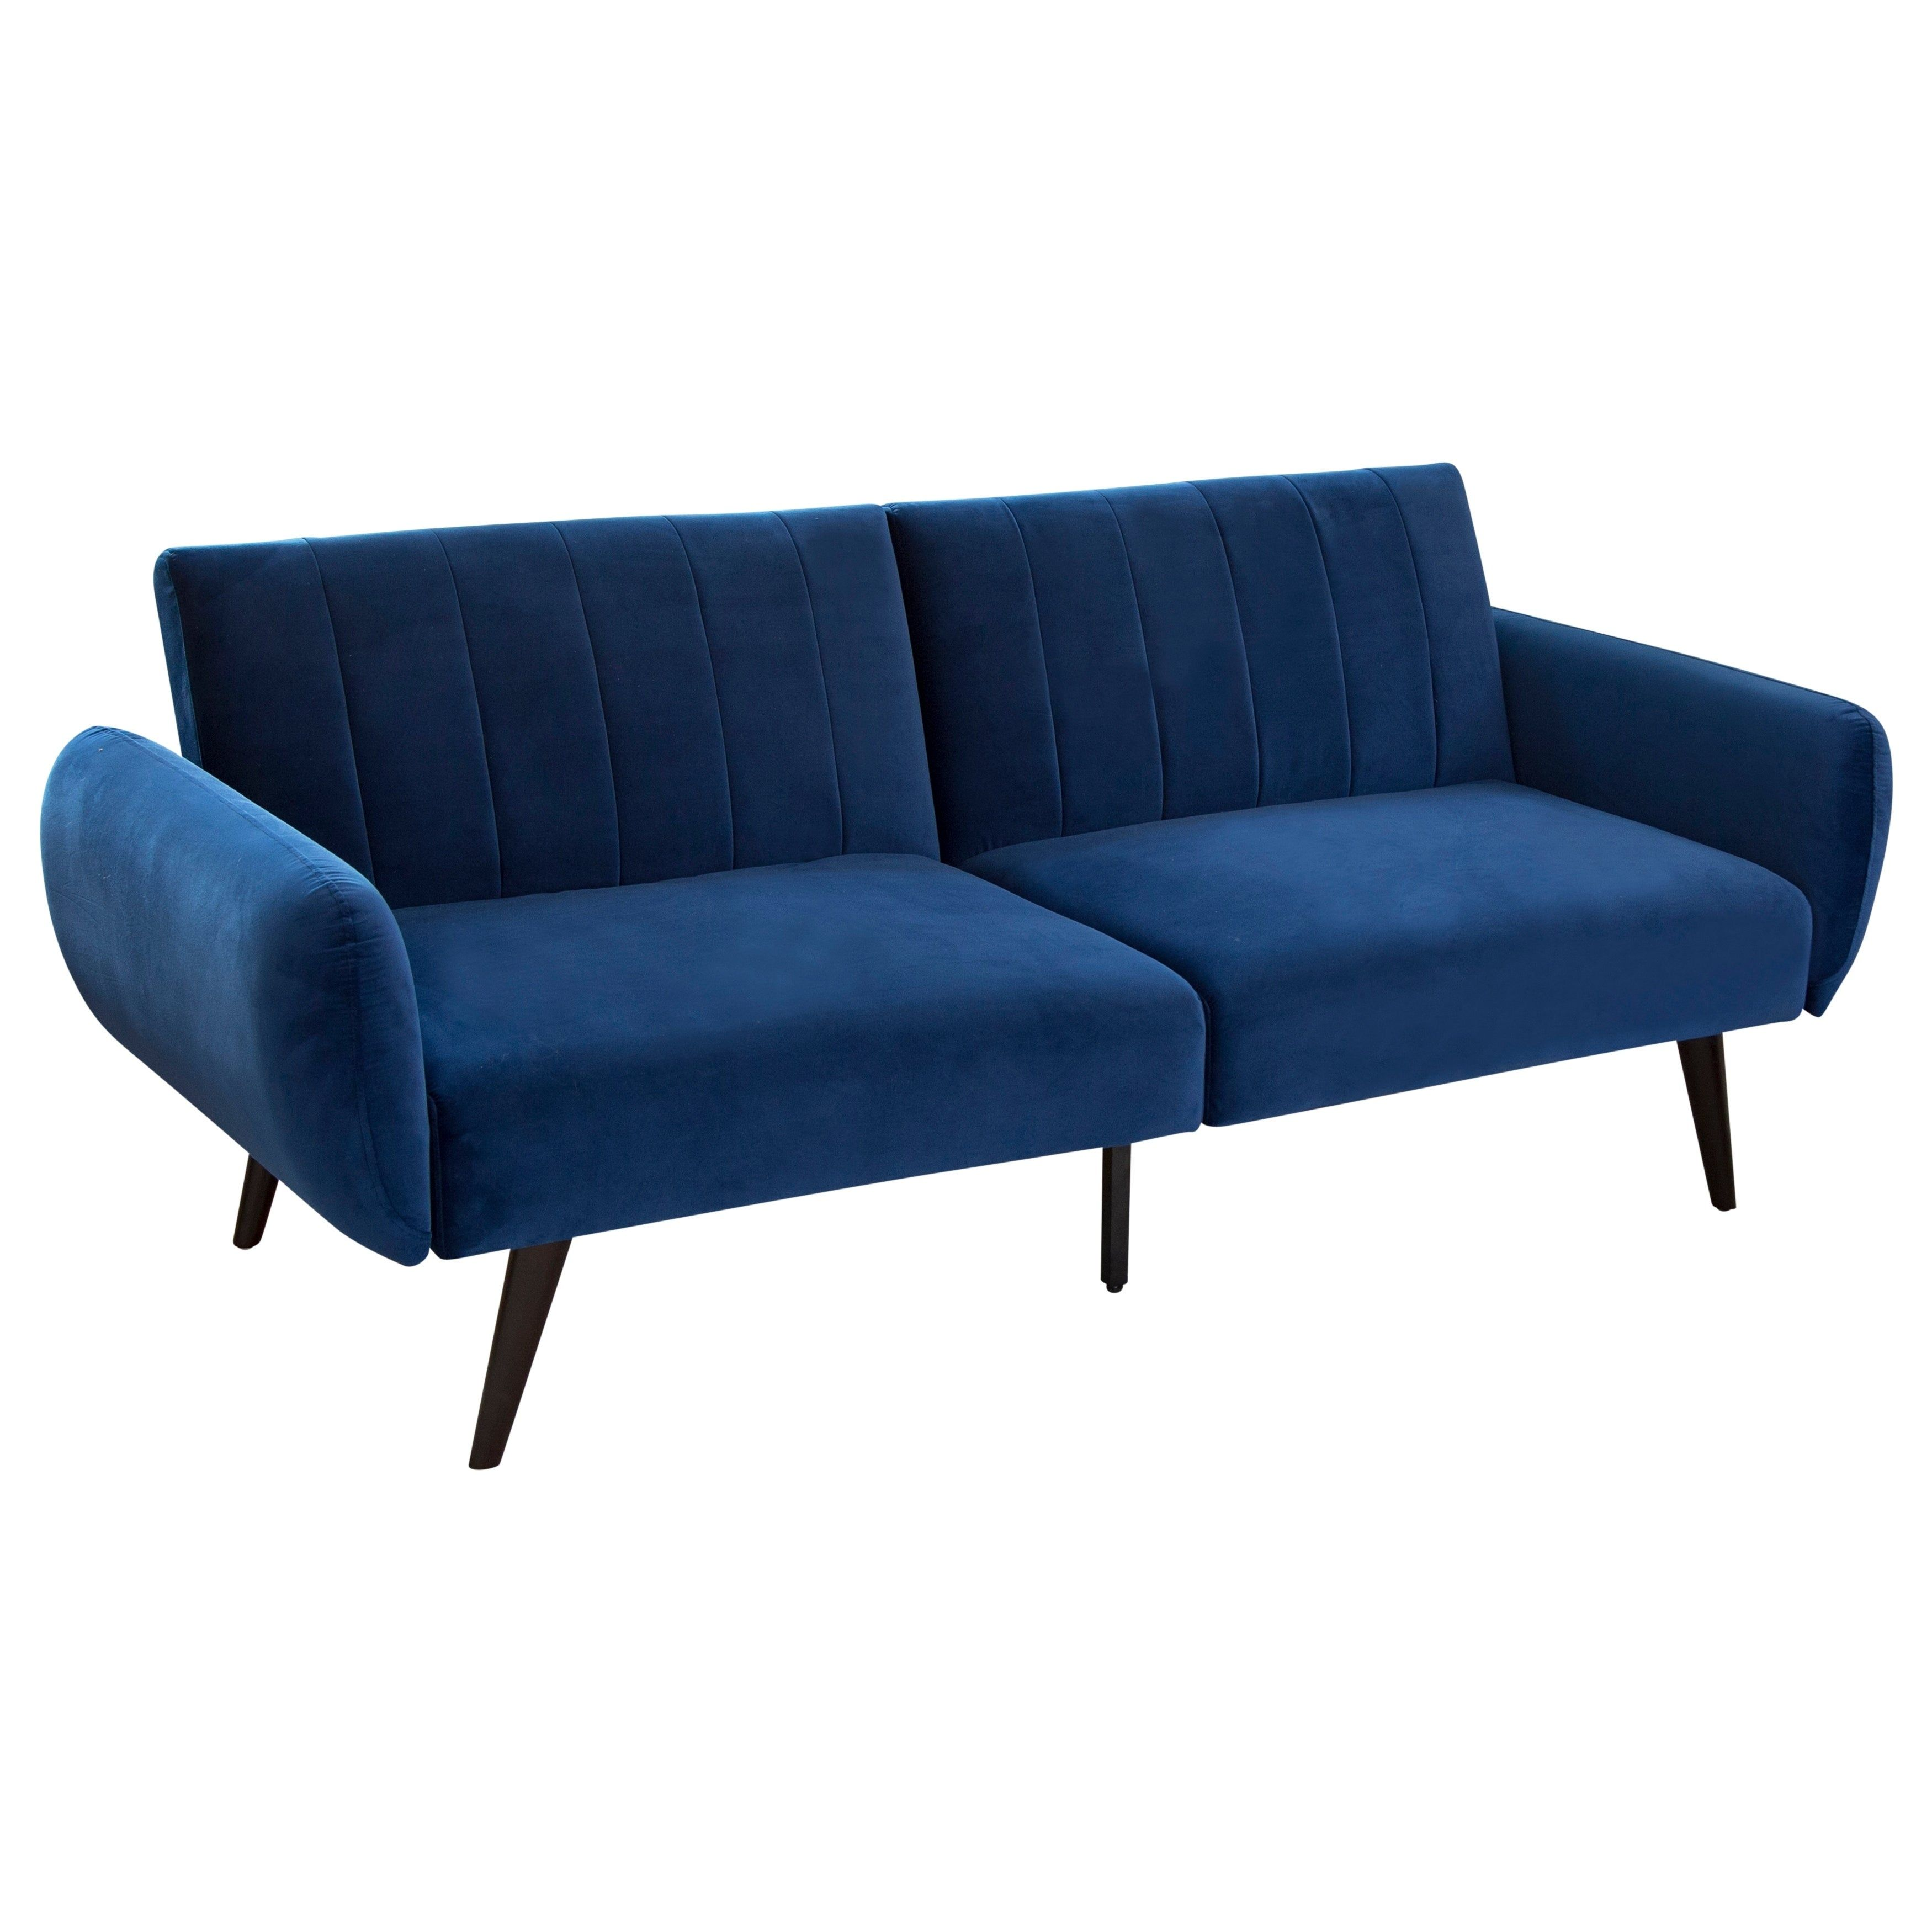 Outstanding Carlton Foldable Velvet Sofa Bed Bralicious Painted Fabric Chair Ideas Braliciousco